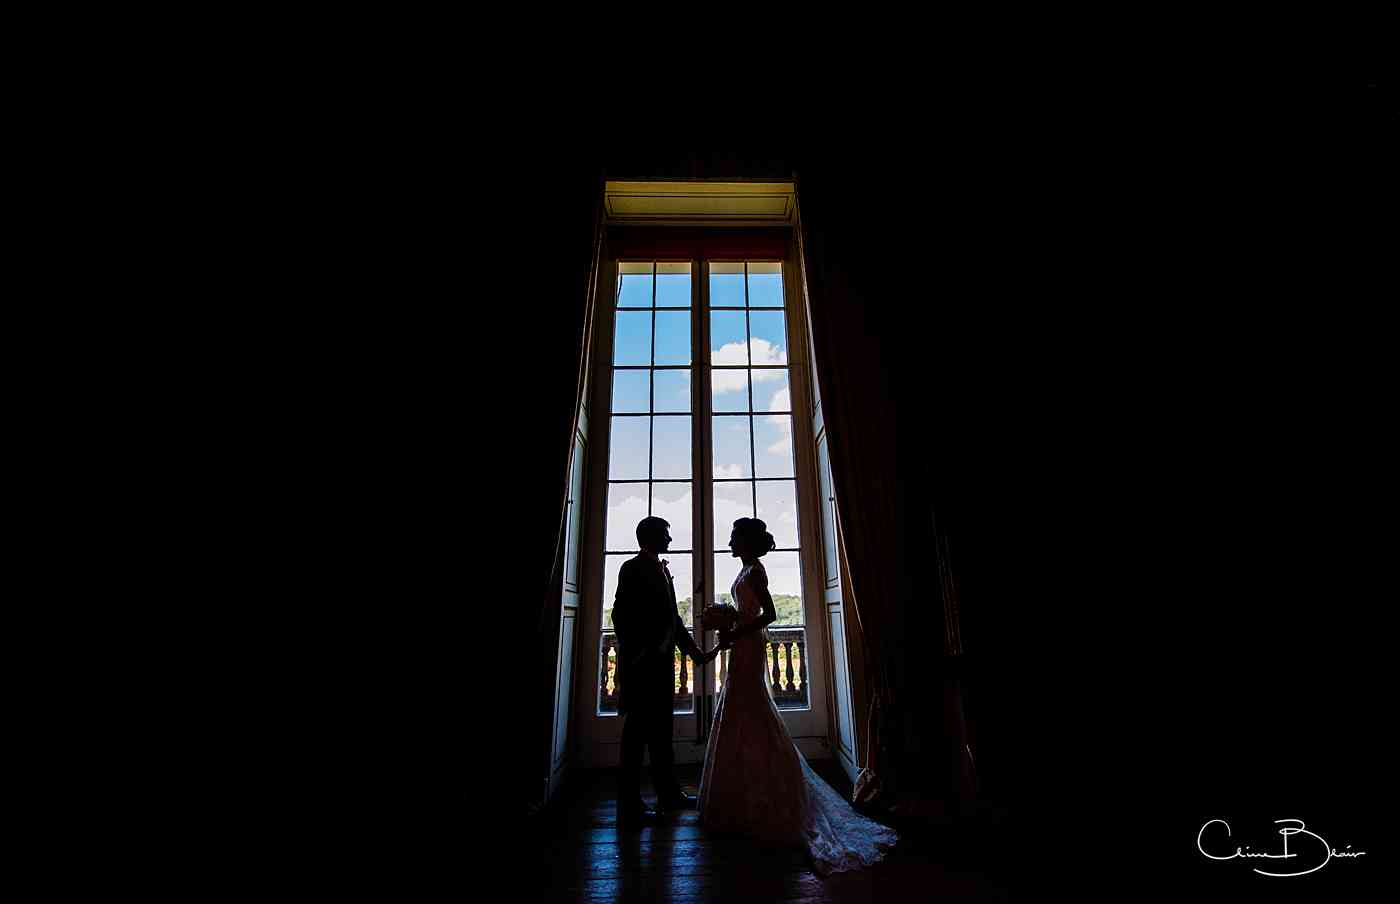 Bride and groom in silhouette by Ragley Hall window